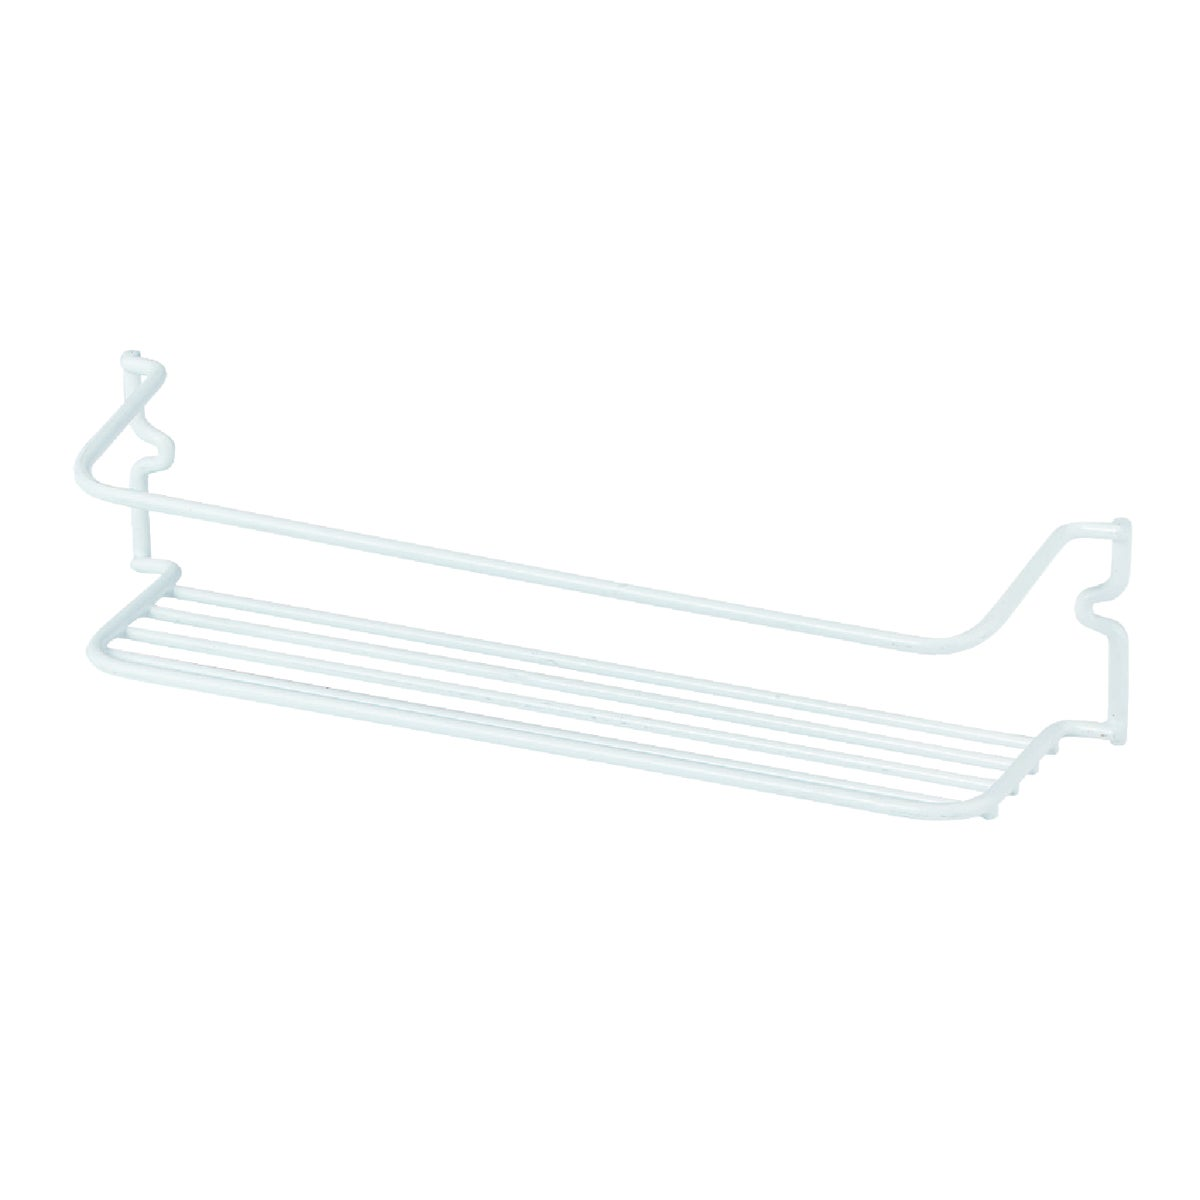 WHITE SPICE RACK - 40505 by Panacea    Grayline